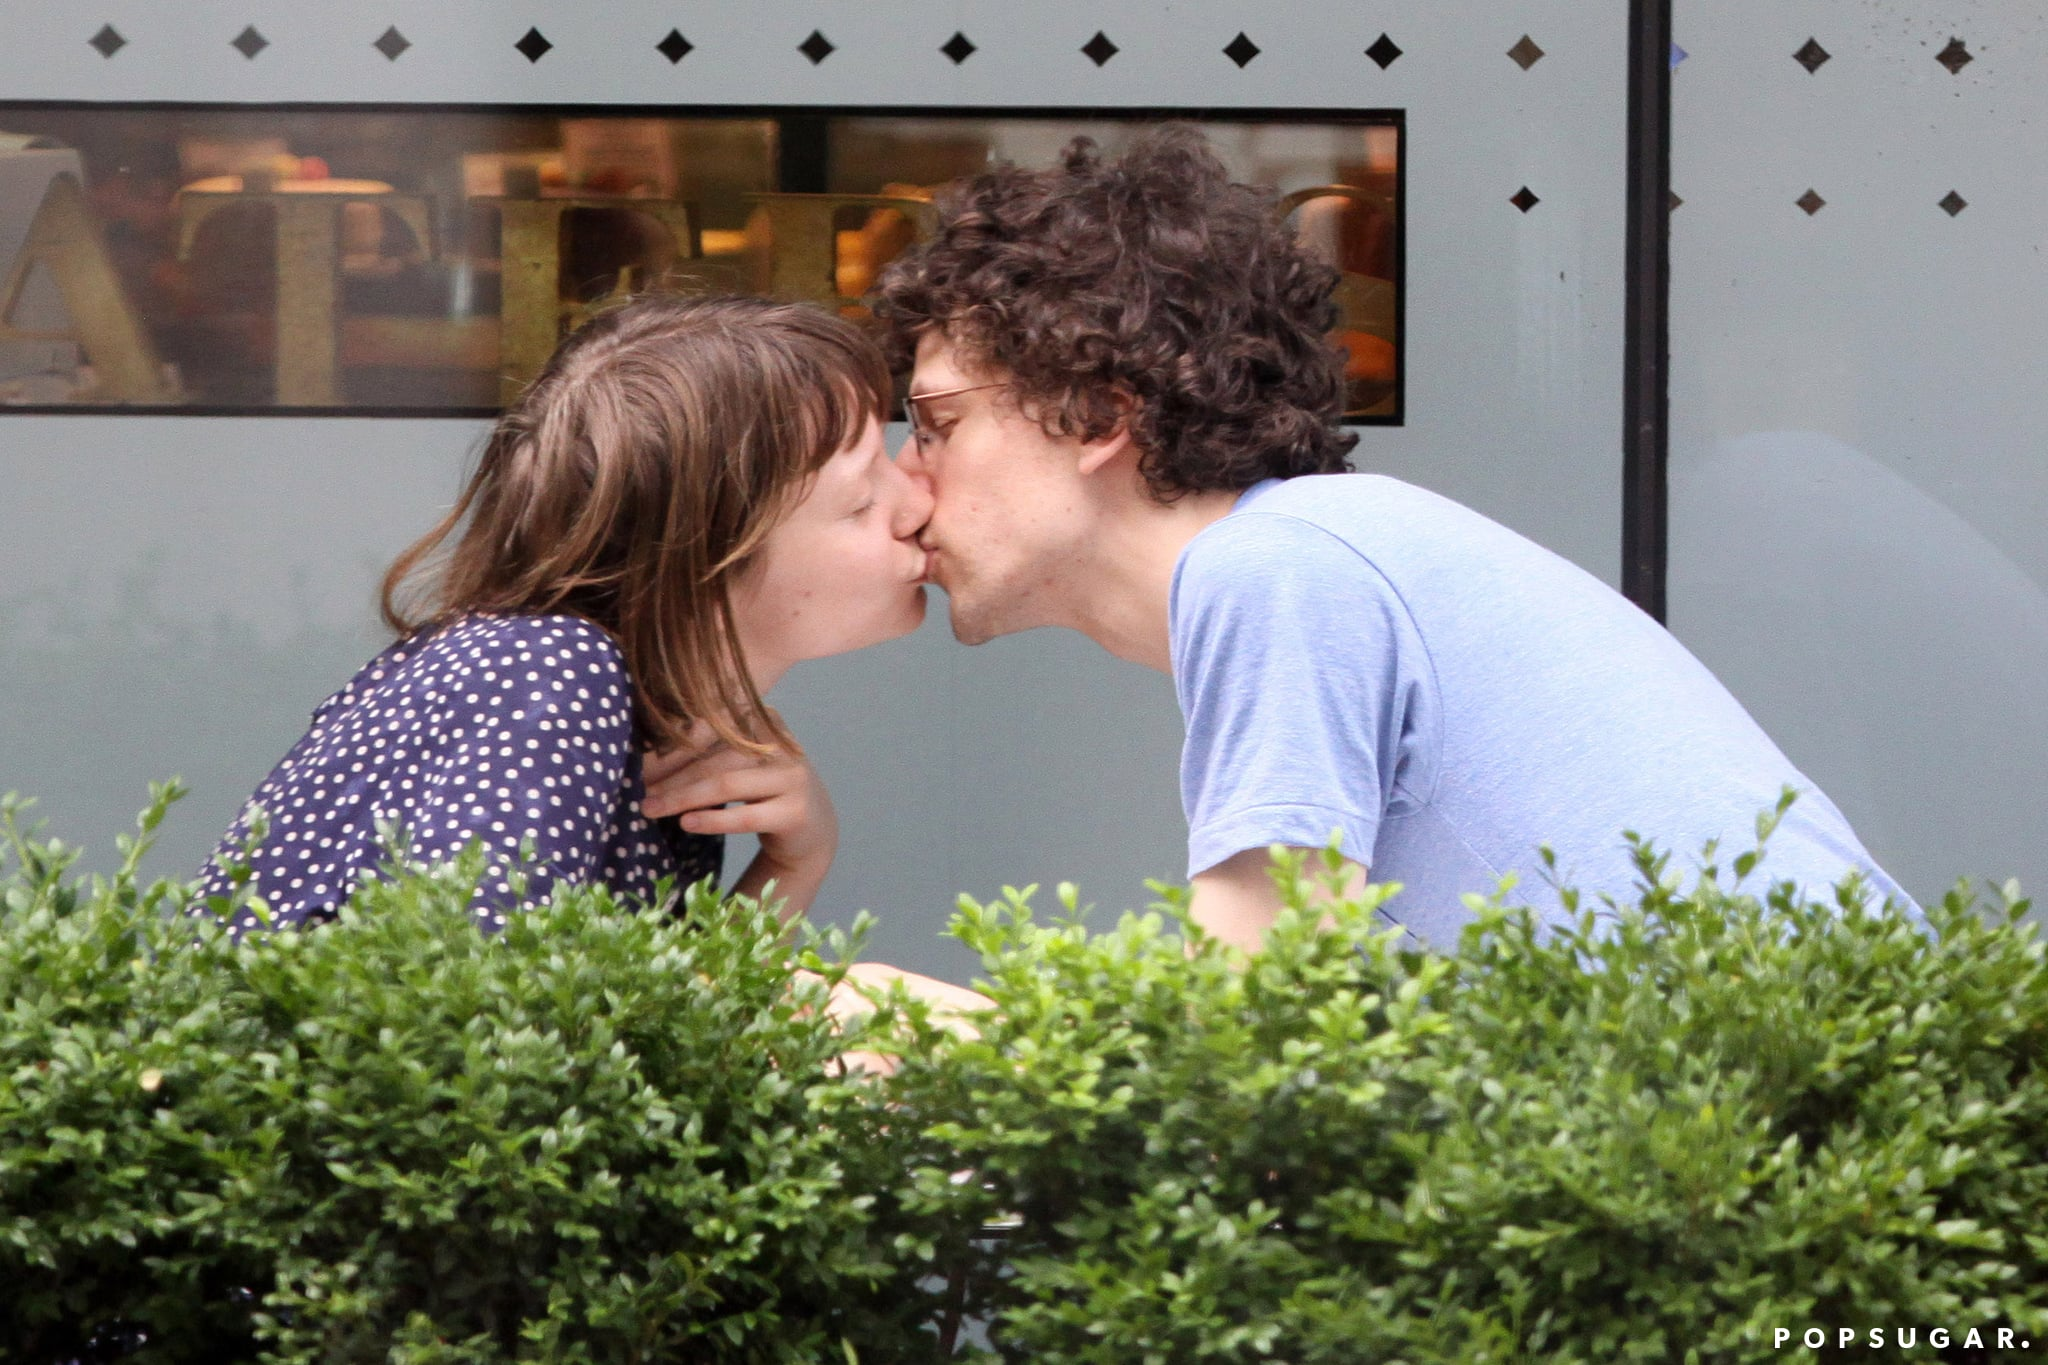 Jesse Eisenberg and Mia Wasikowska shared a kiss at an outdoor restaurant in Toronto.